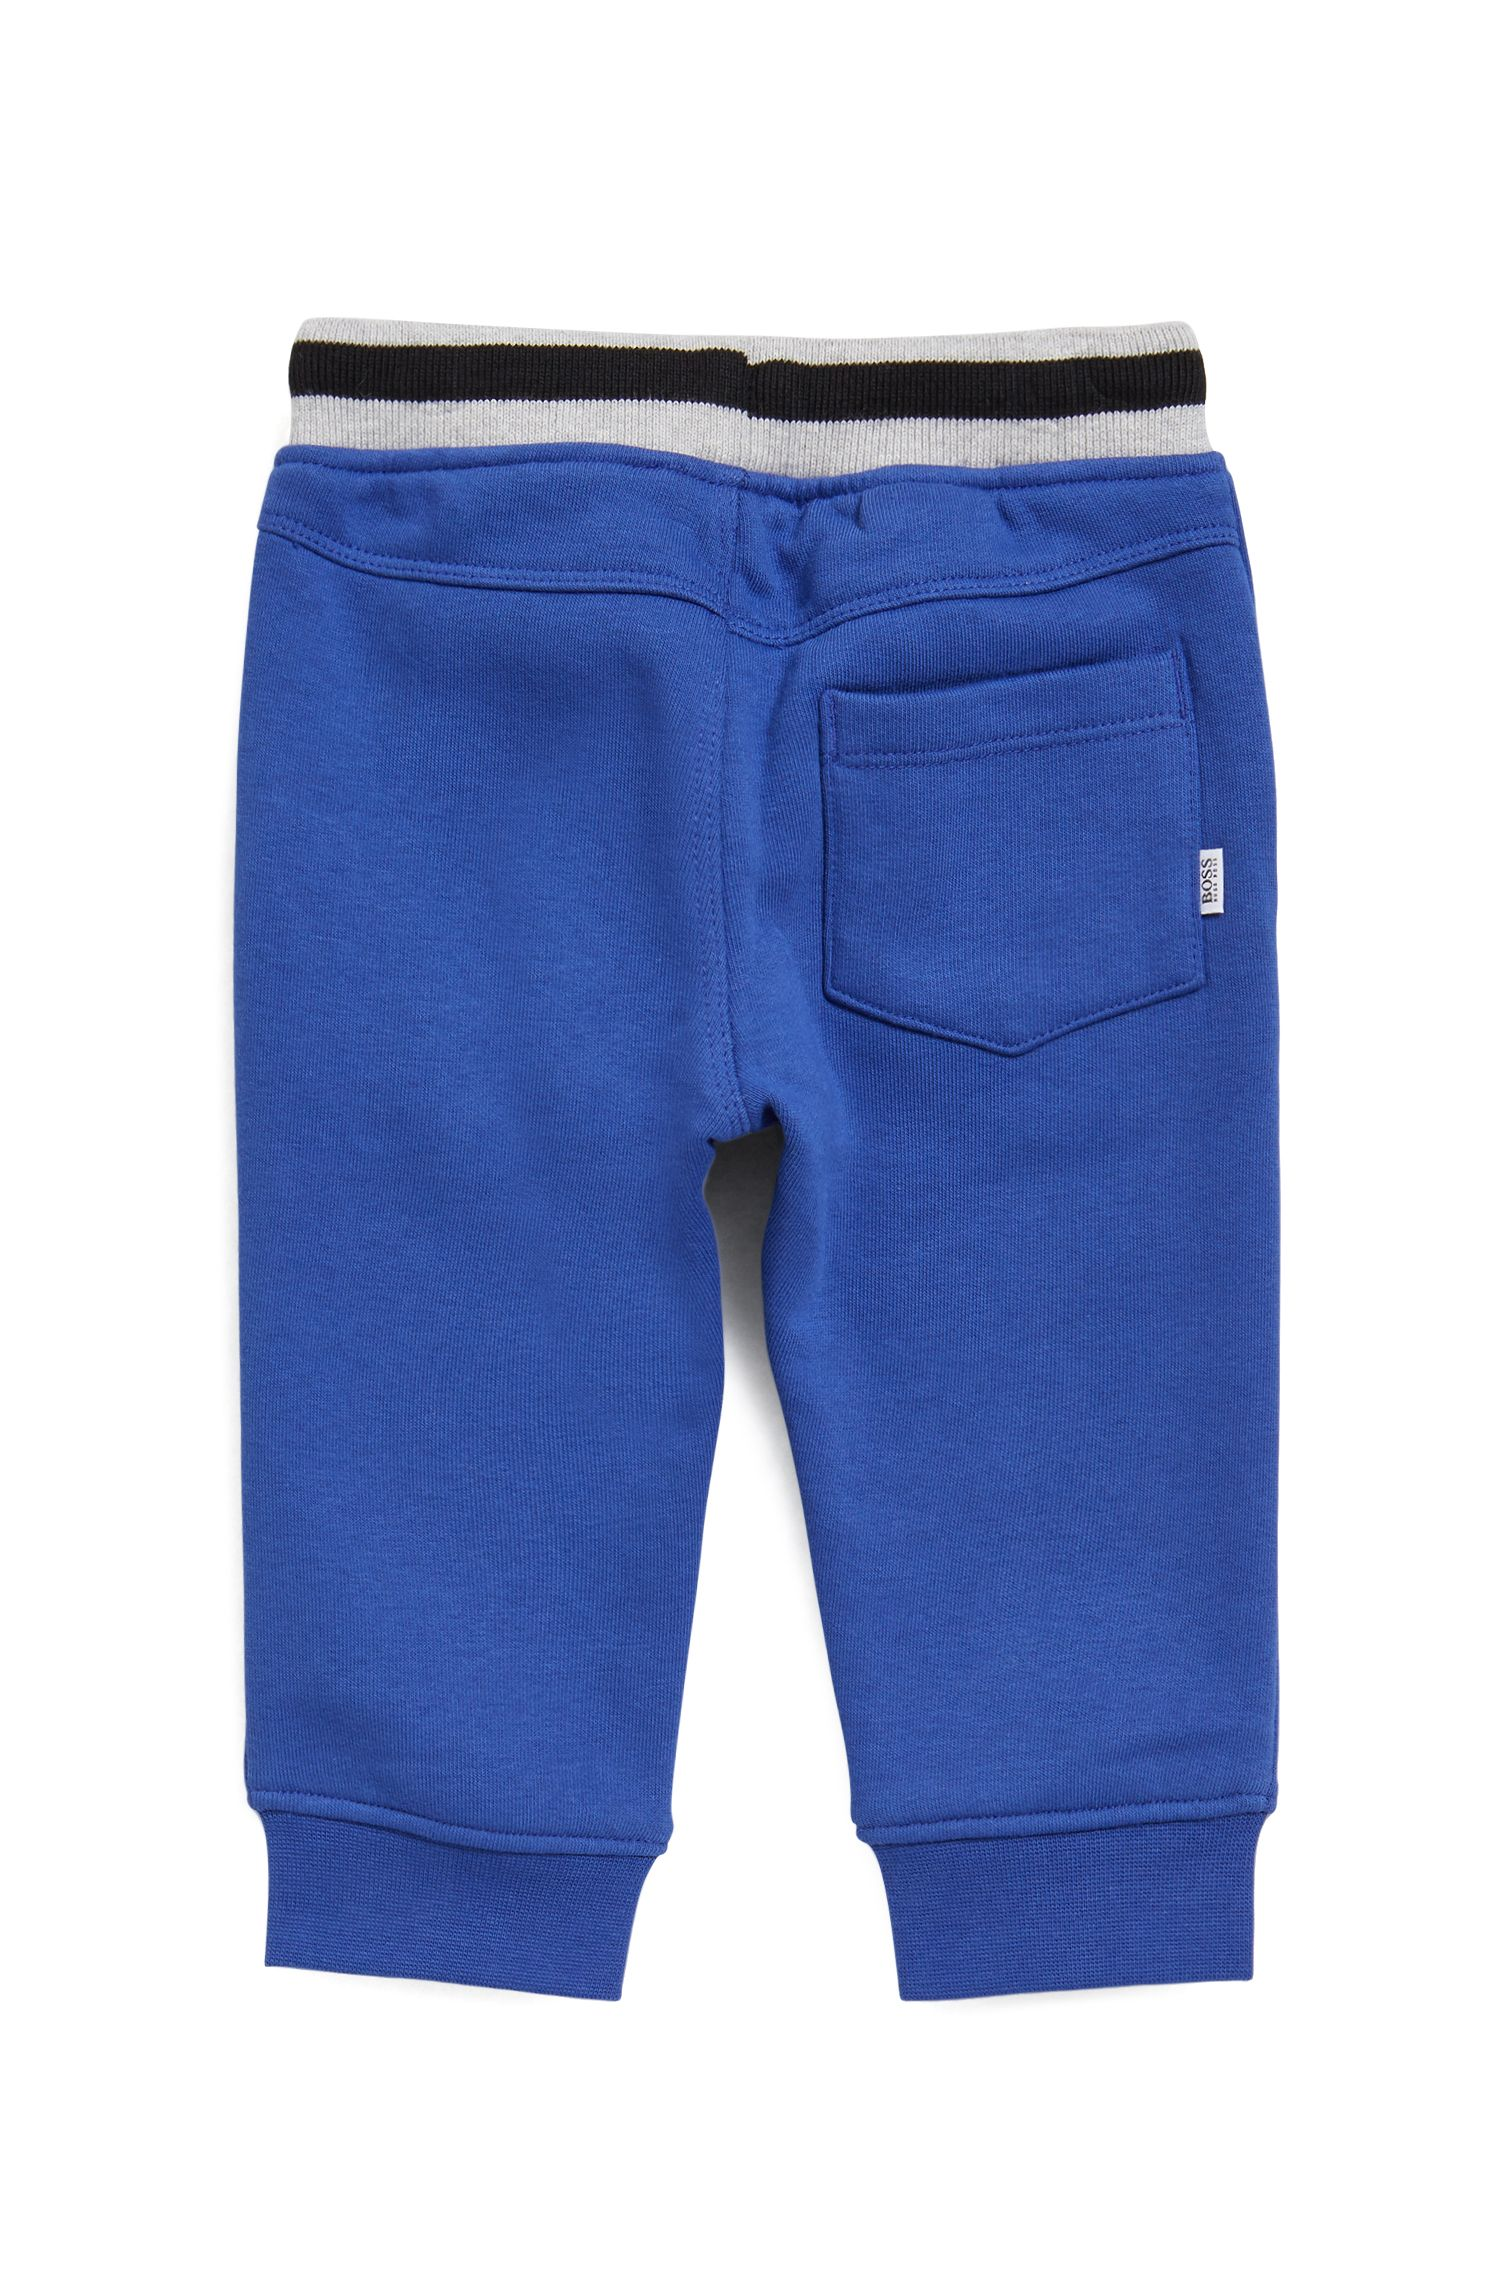 Pantalon de jogging pour enfant en molleton French Terry